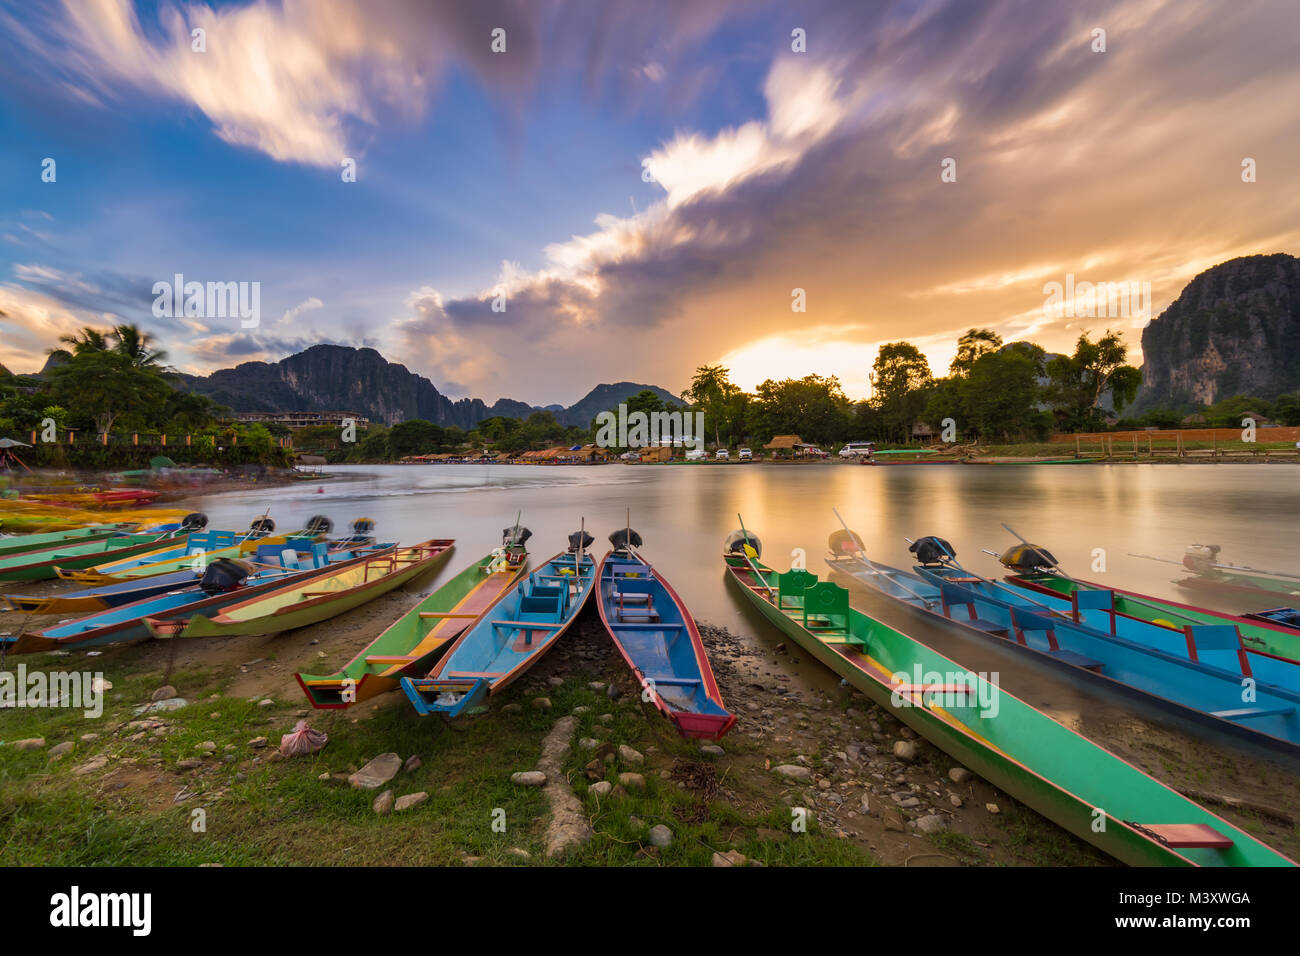 Long exposure and long tail boats on naw song river in Vang vieng, Laos. - Stock Image